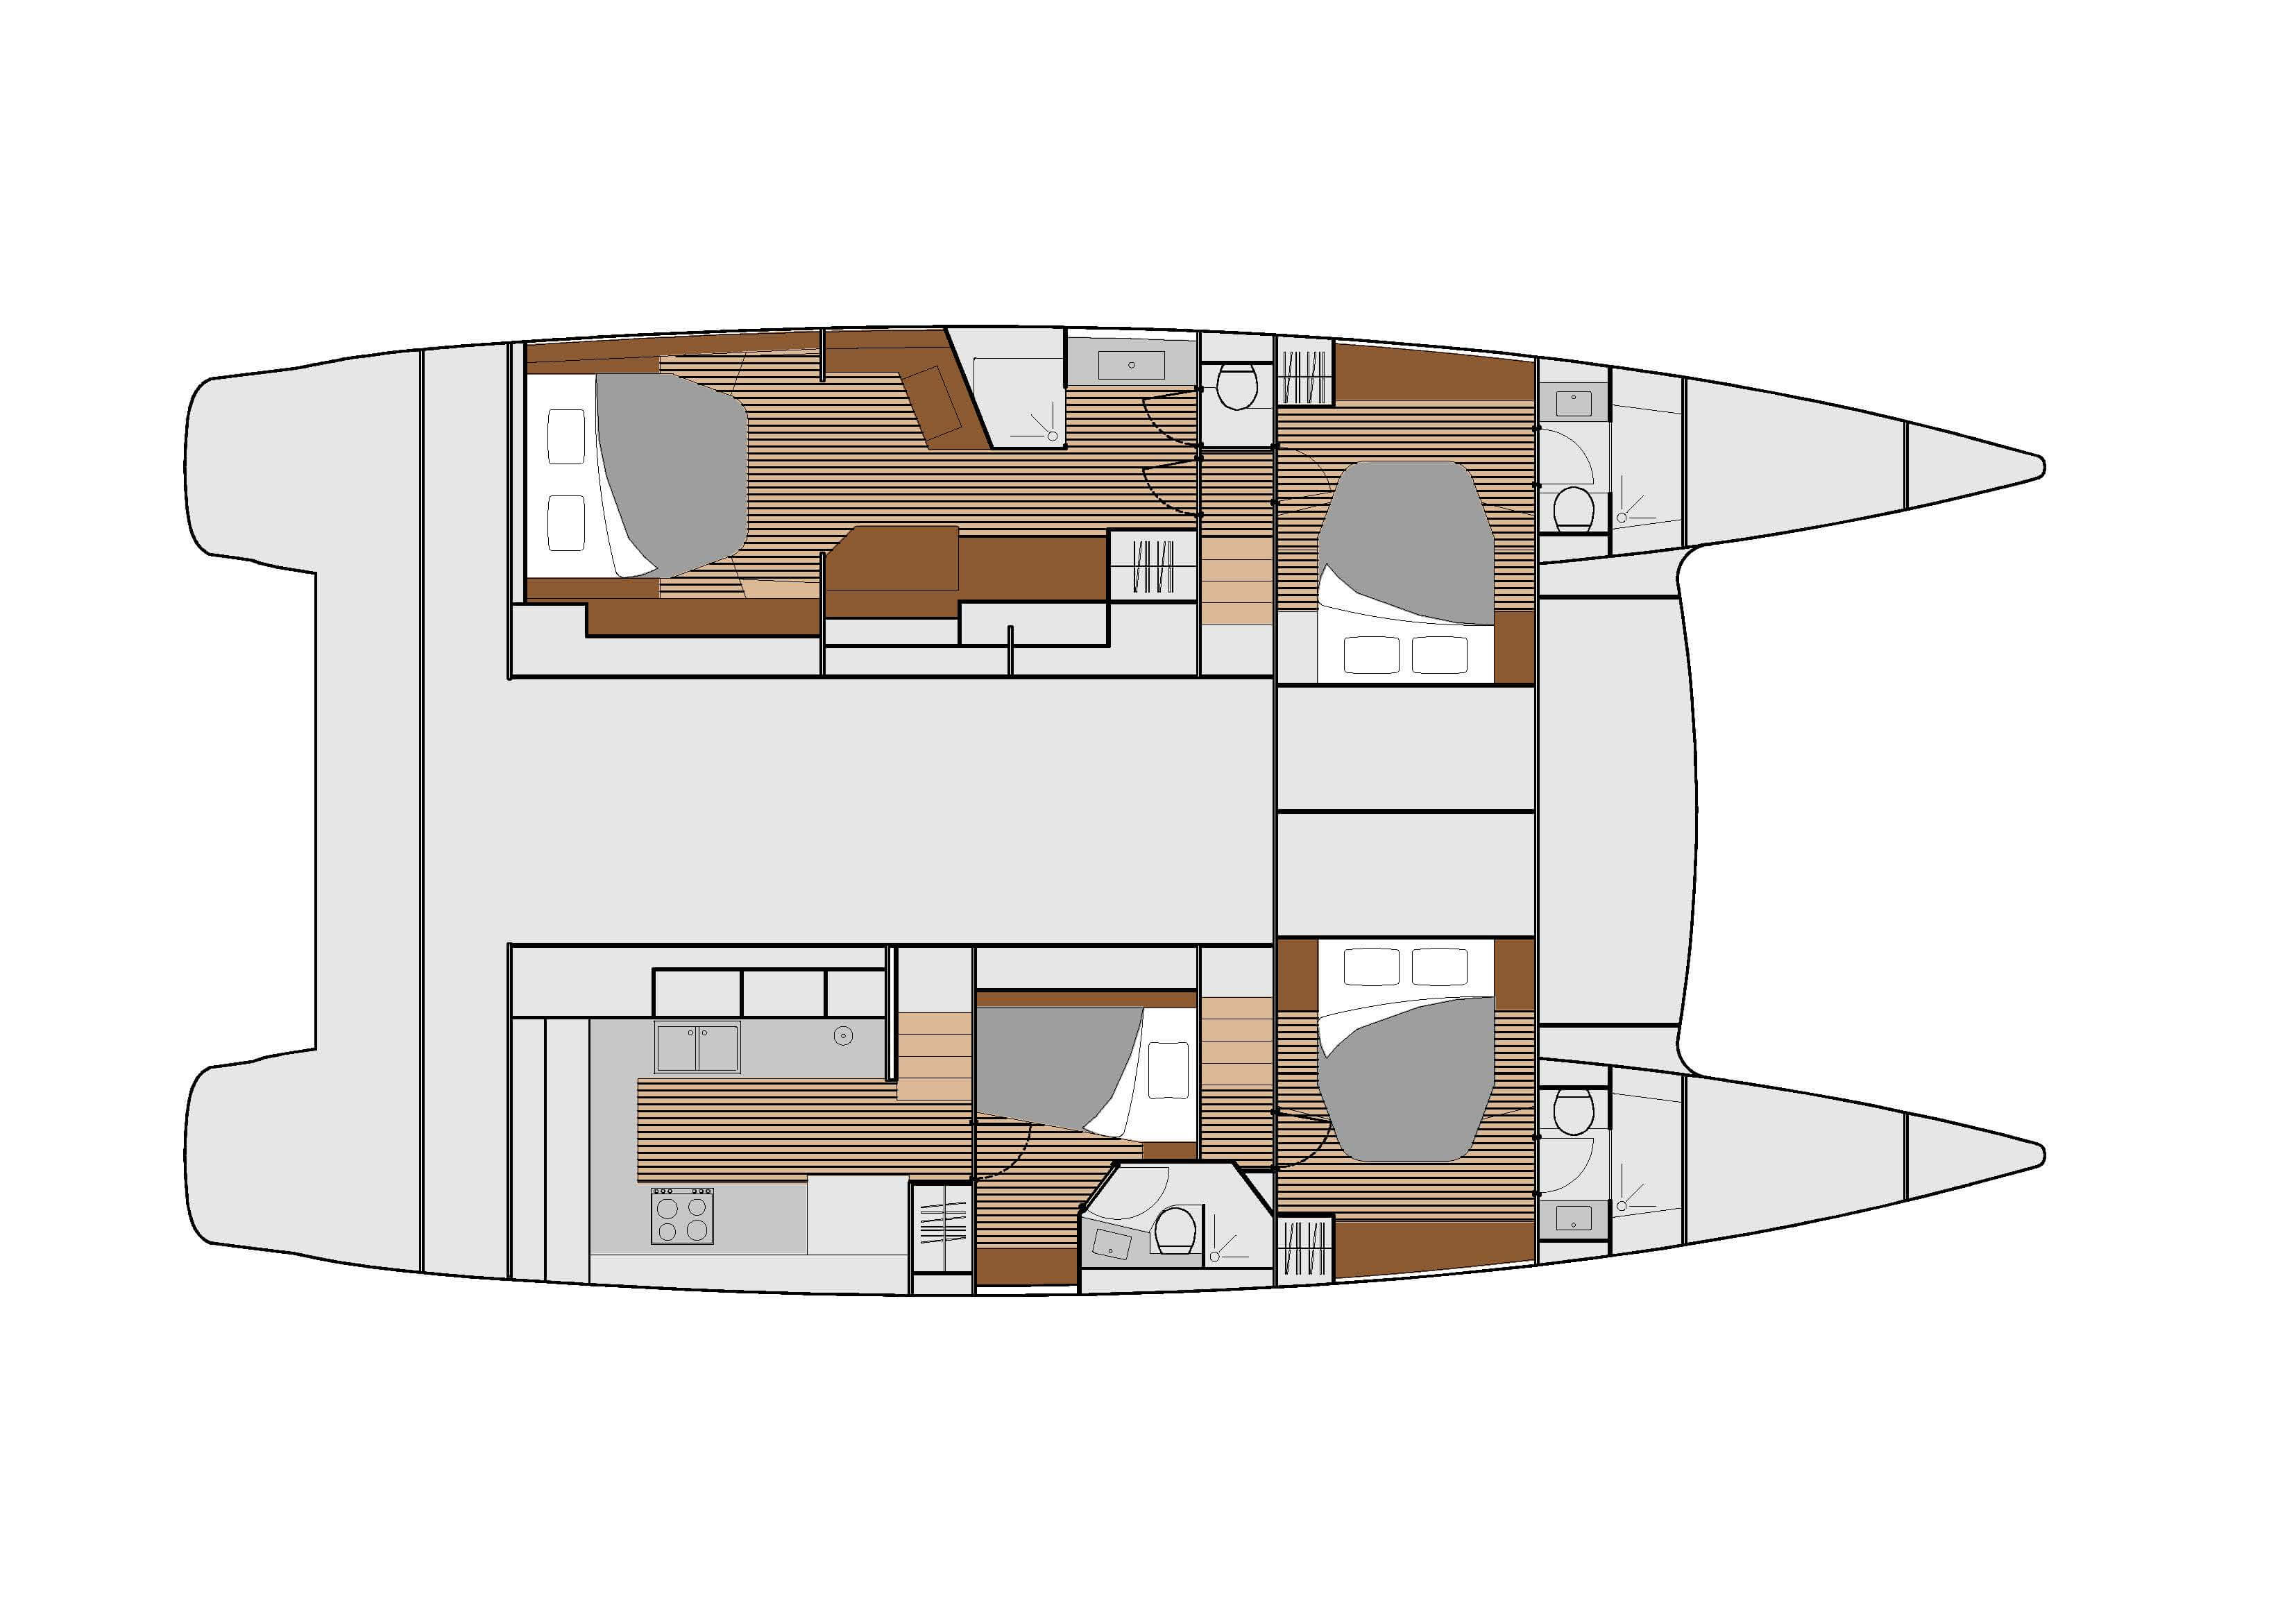 ip58-4-layout